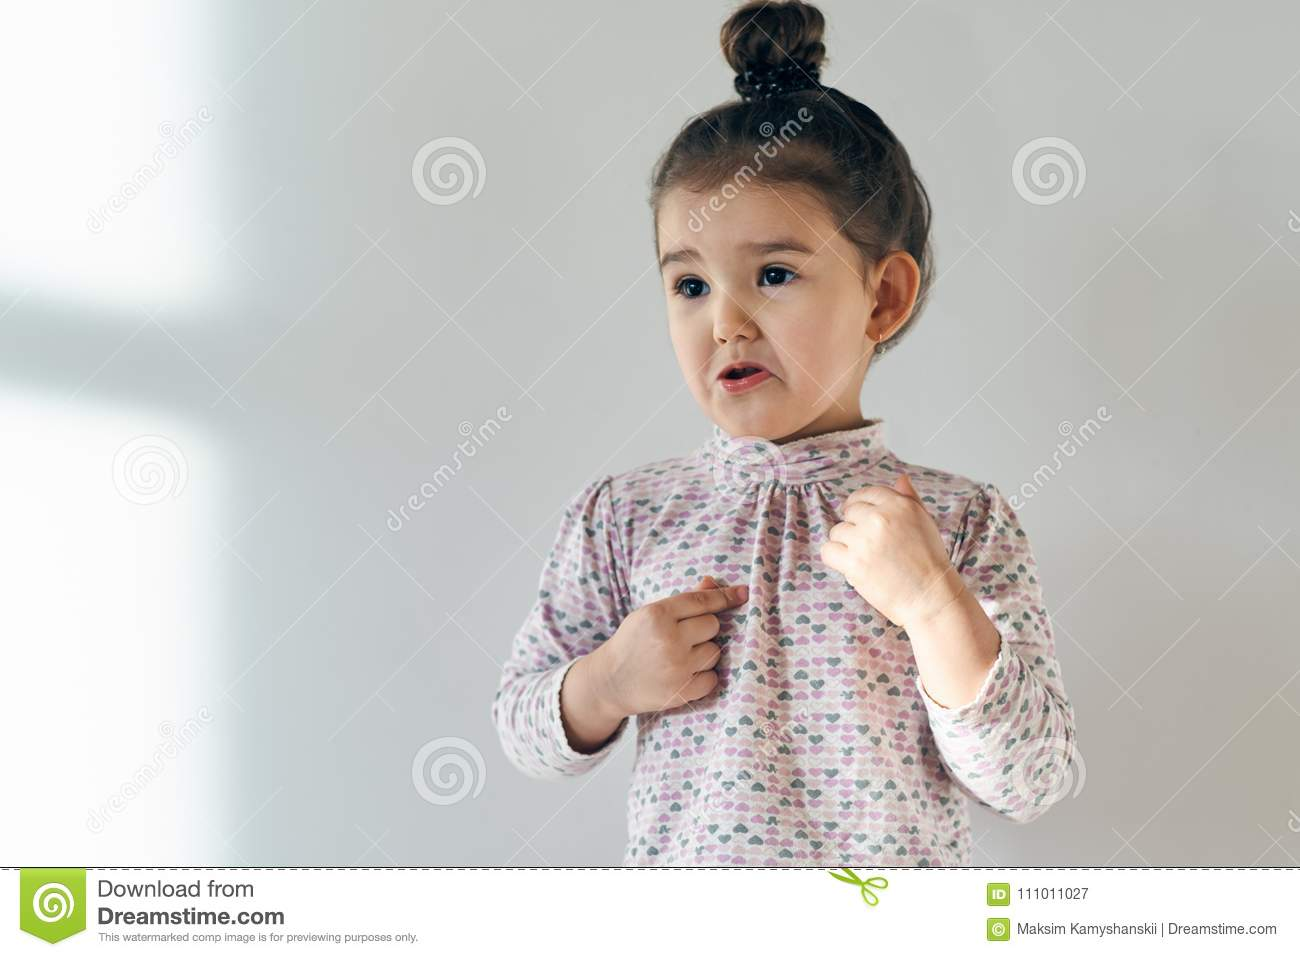 Little child baby girl with her hair gathered in a bun on top upset and outraged by the injustice.